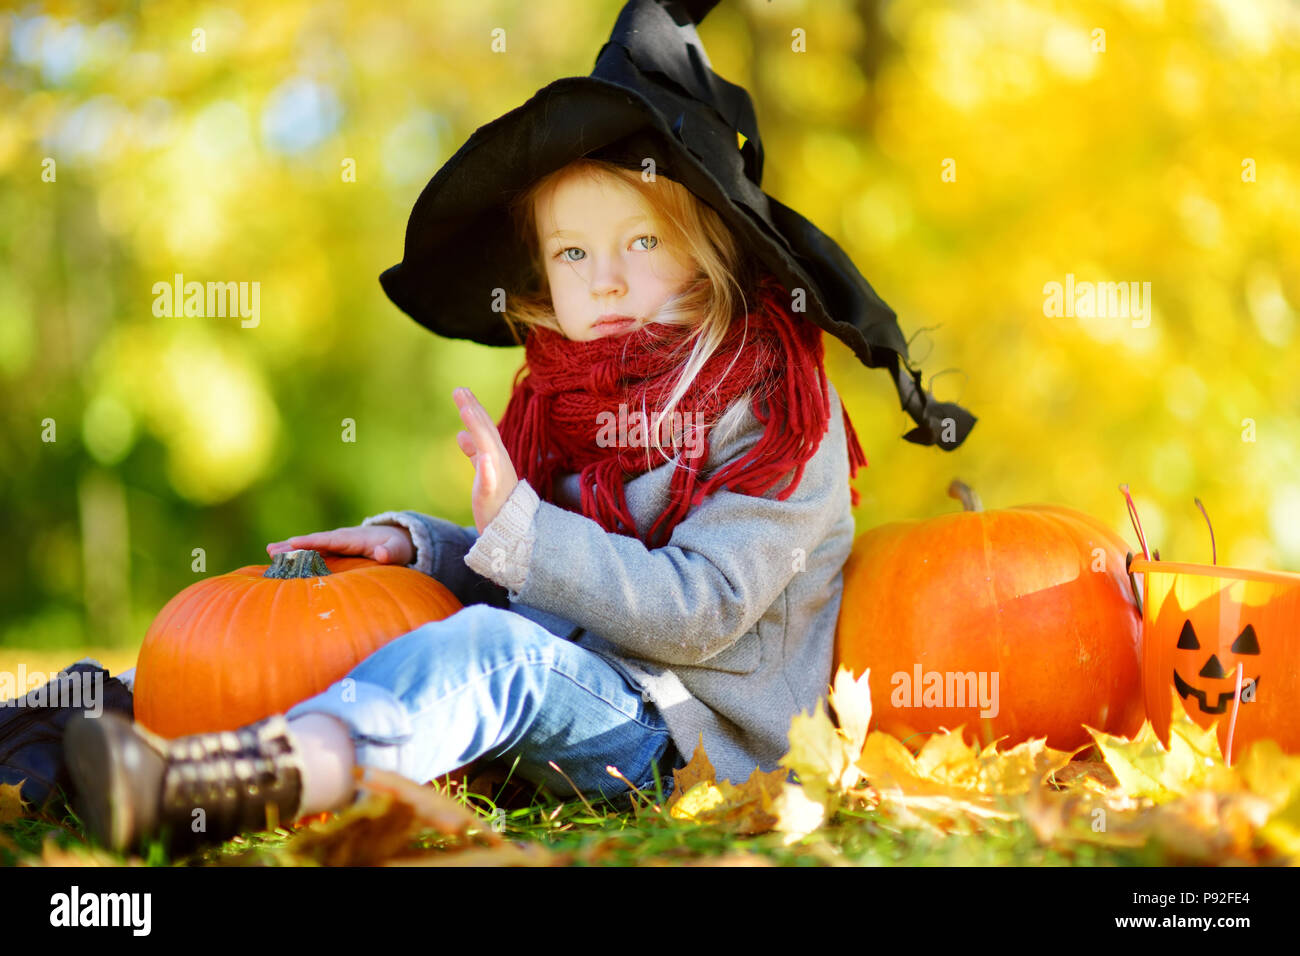 adorable little girl wearing halloween costume having fun on a pumpkin patch on beautiful autumn day happy child playing in autumn park autumn activ